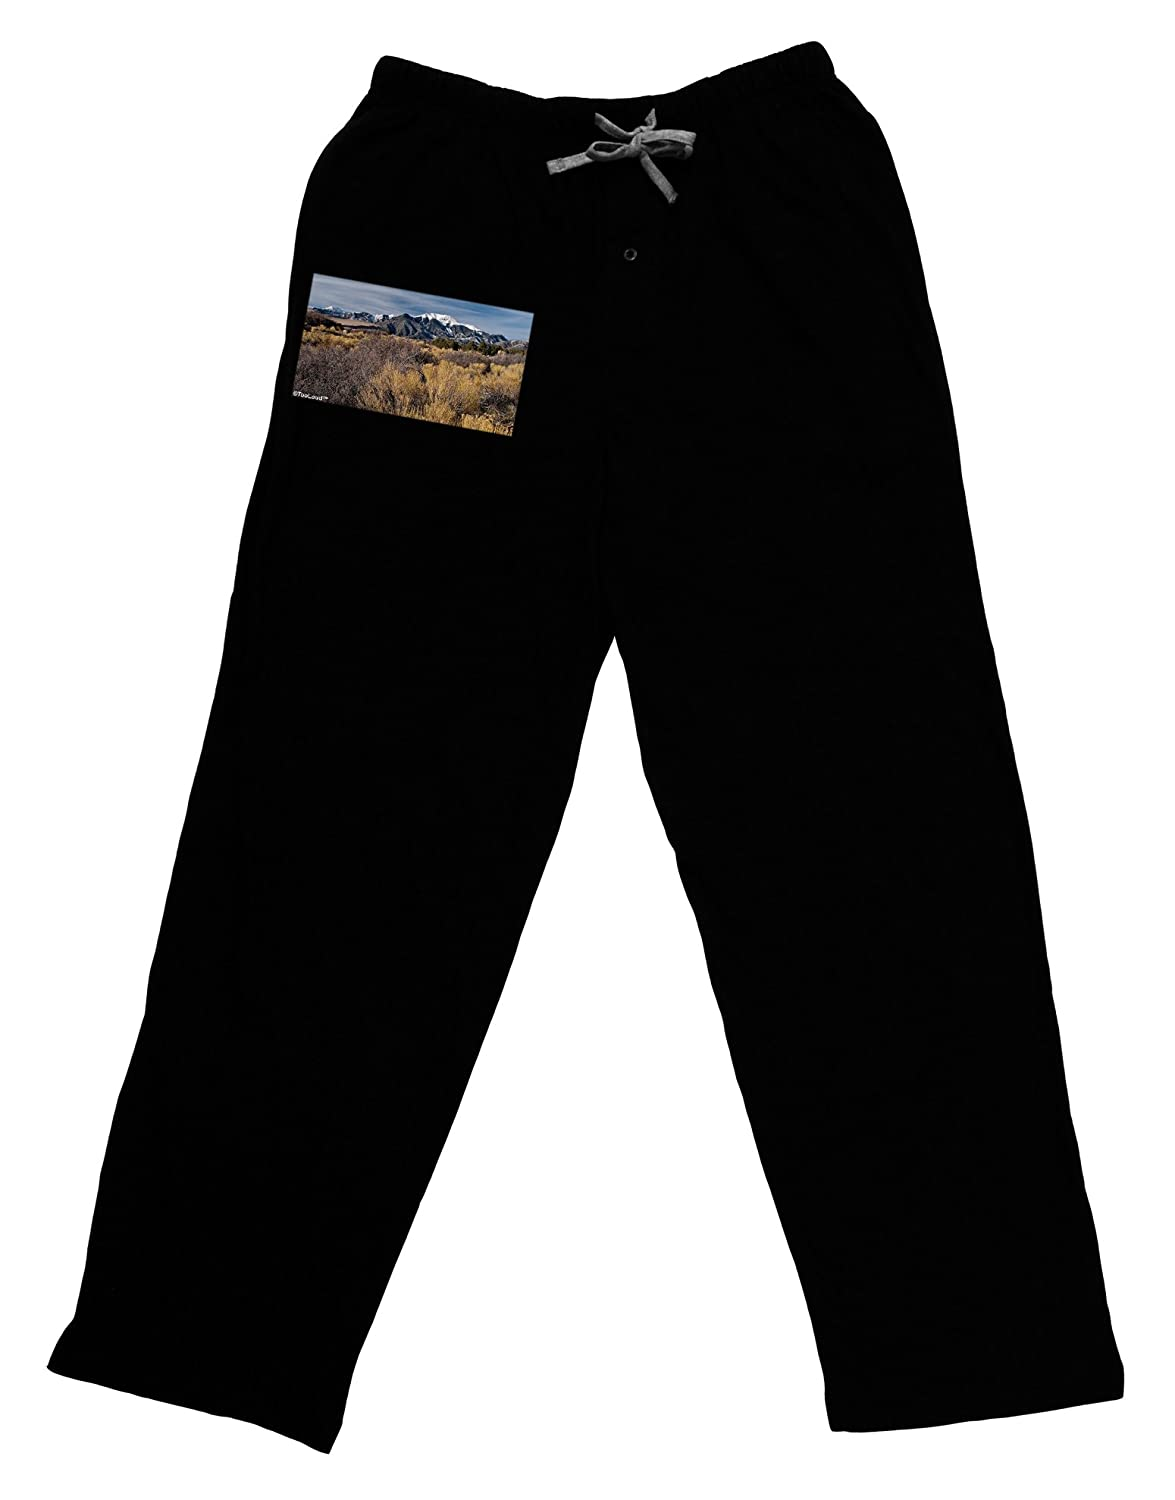 TooLoud Mountain Forest Park Adult Lounge Pants